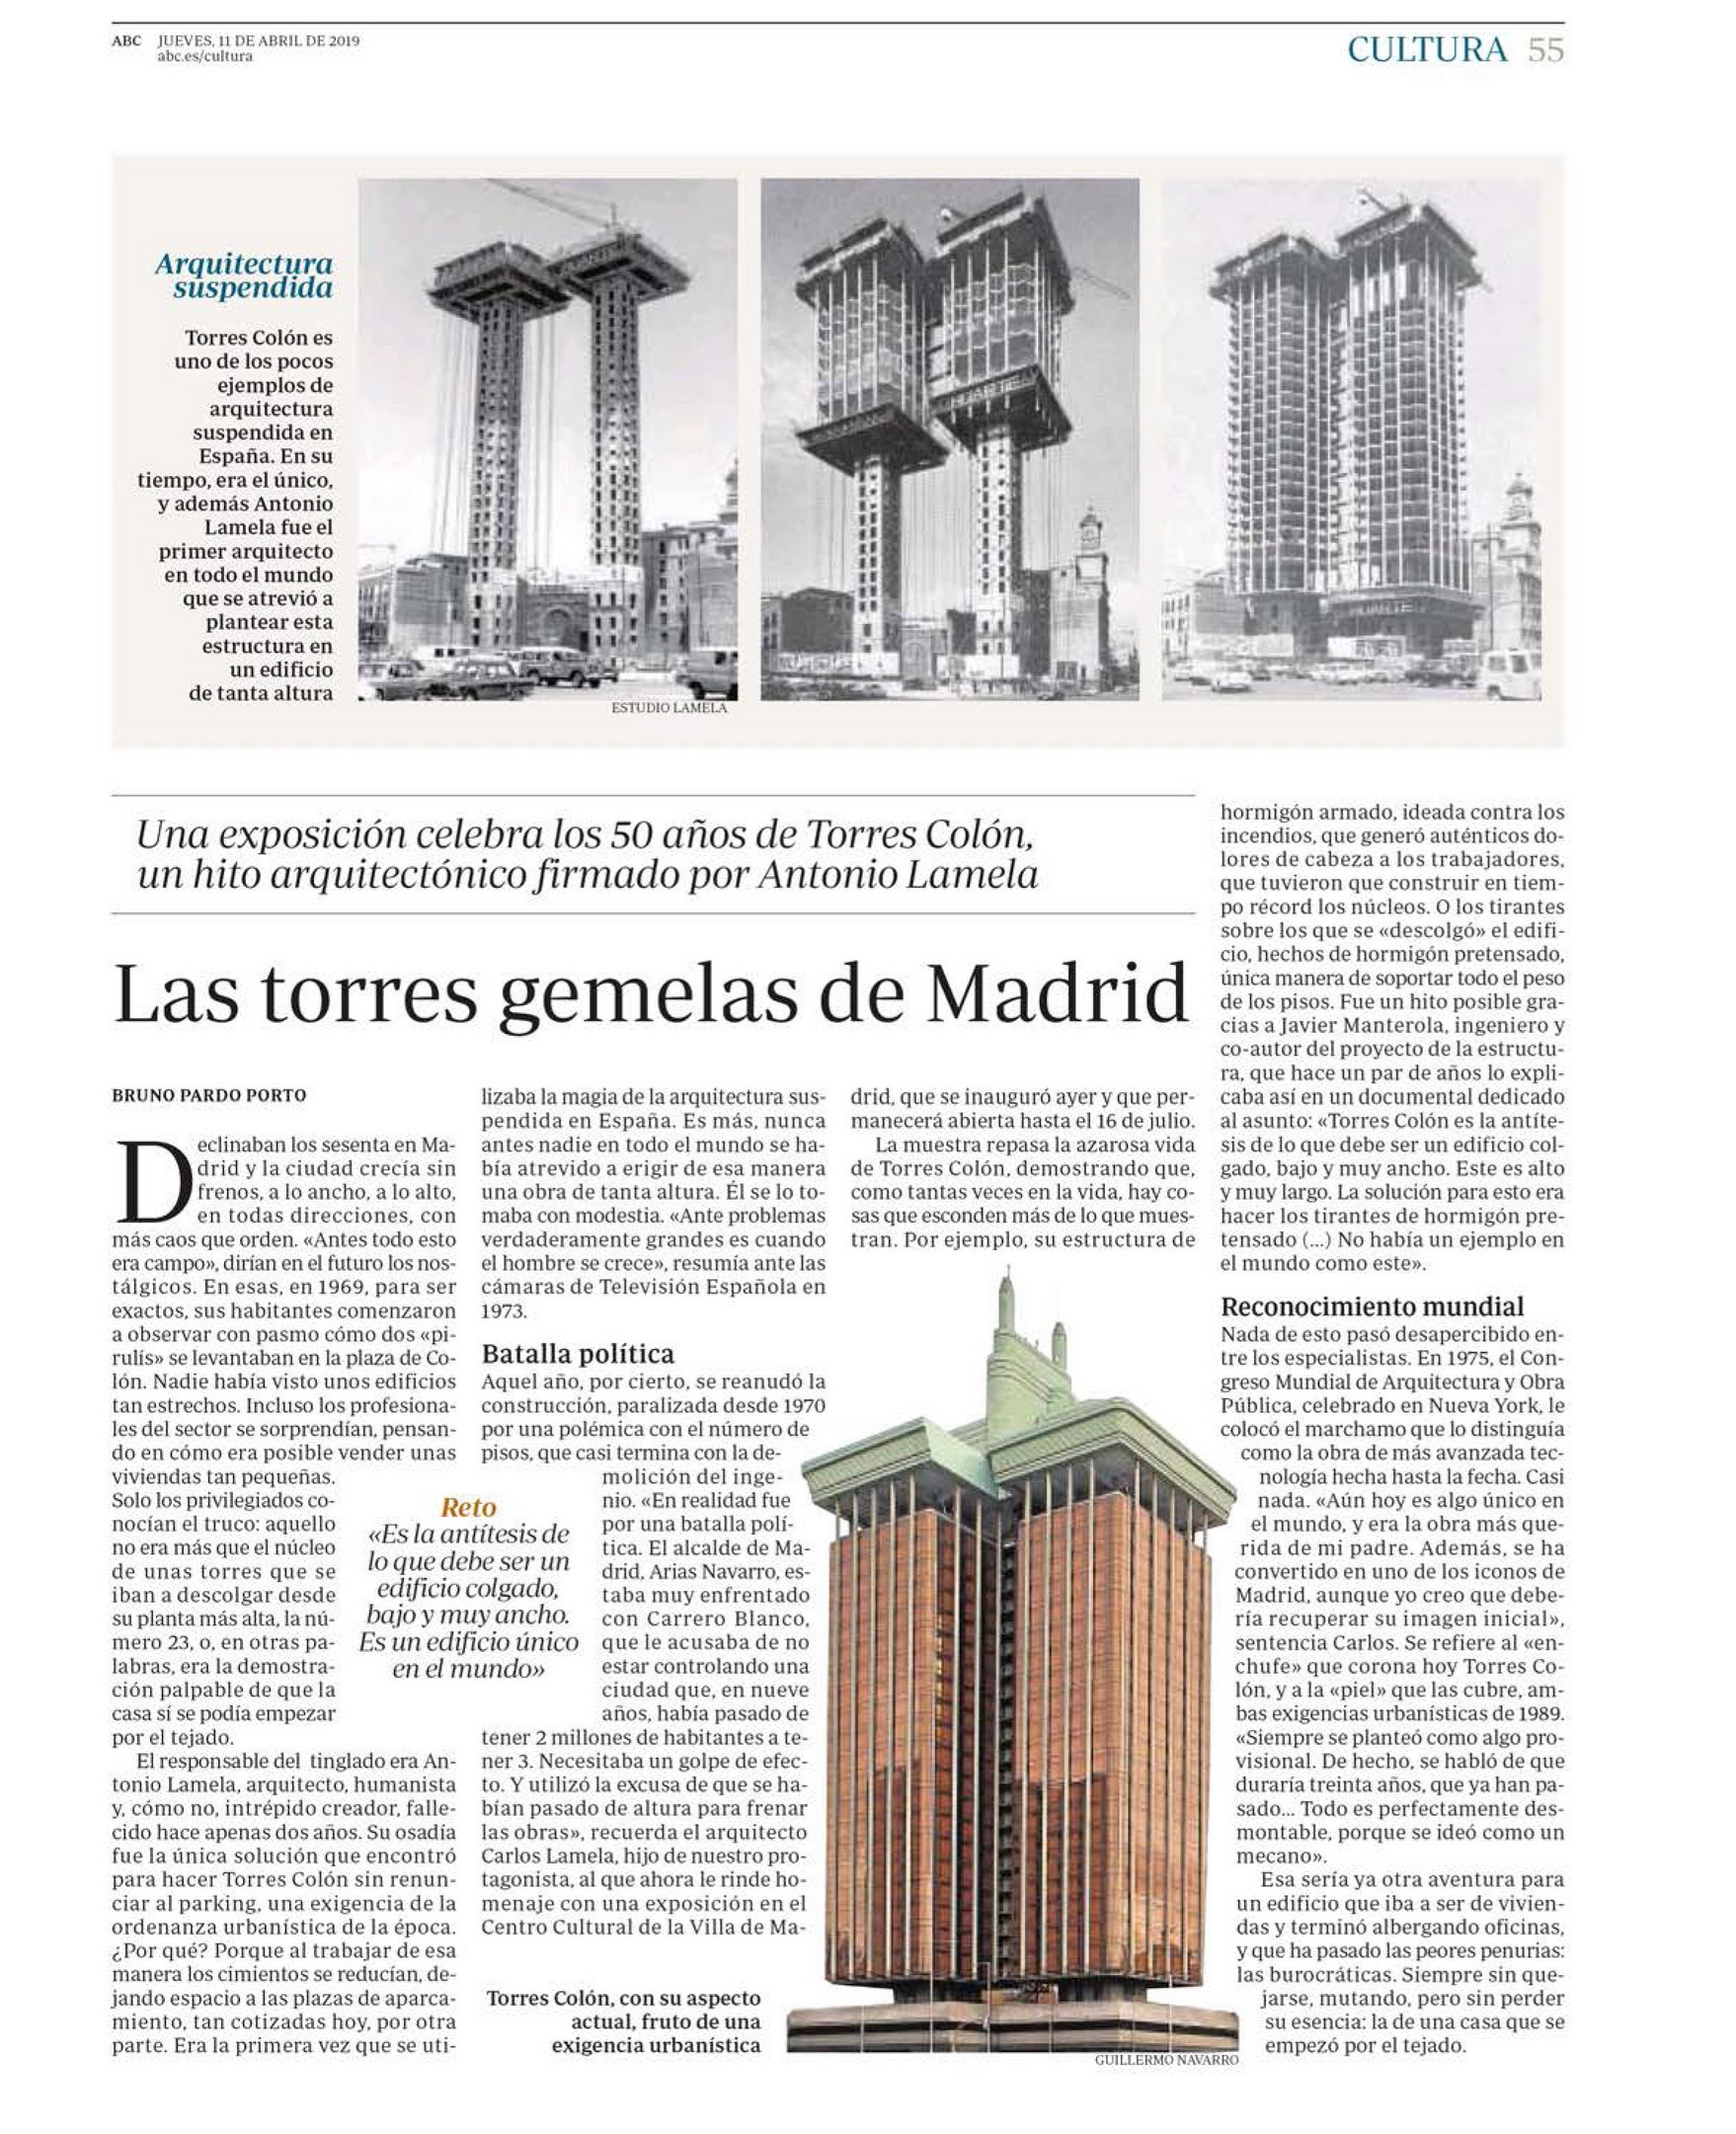 The Twin Towers of Madrid